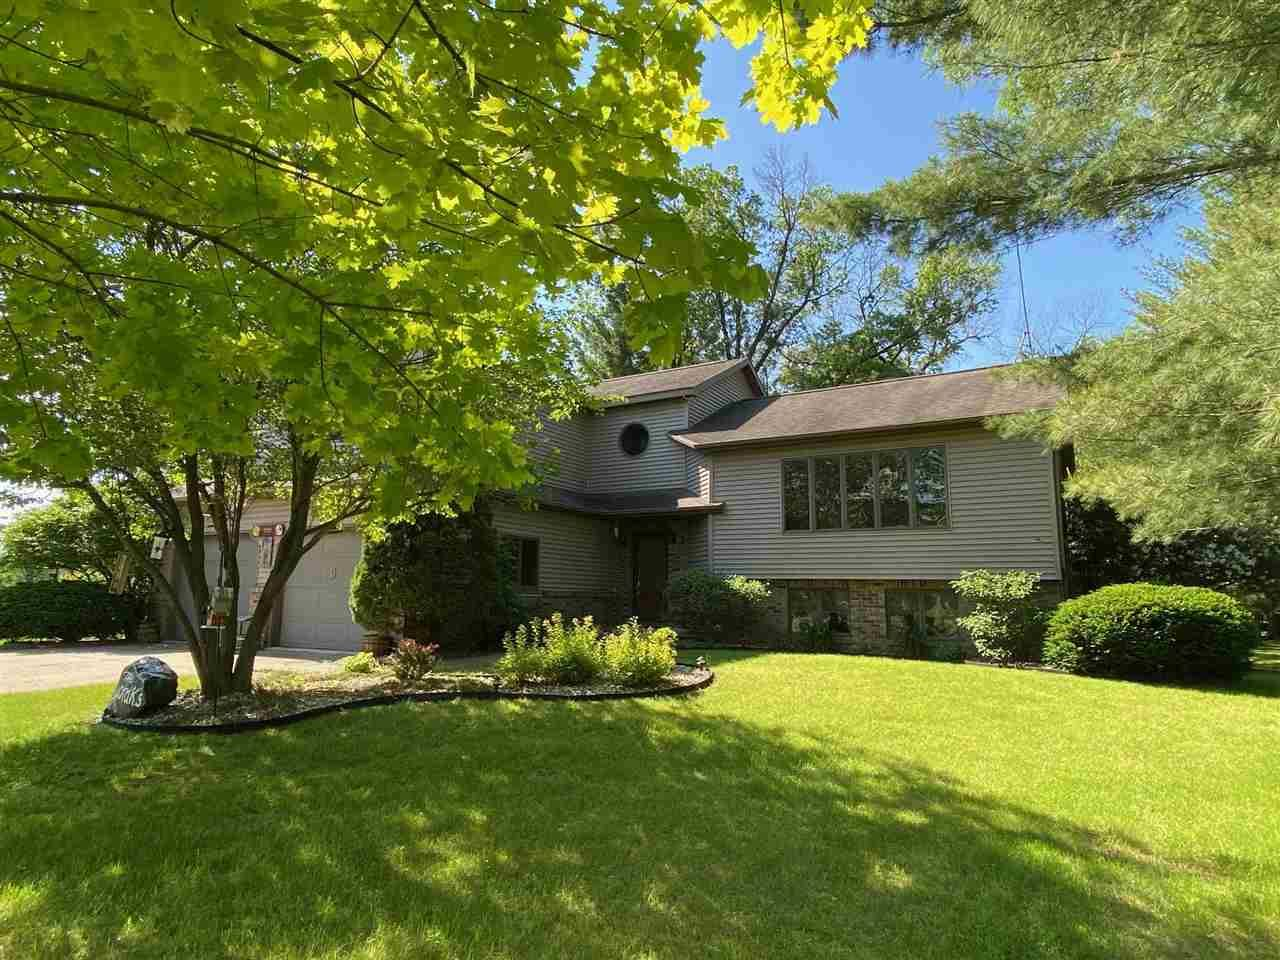 31523 Grotto Ave, Tomah, WI 54660 - #: 1912638